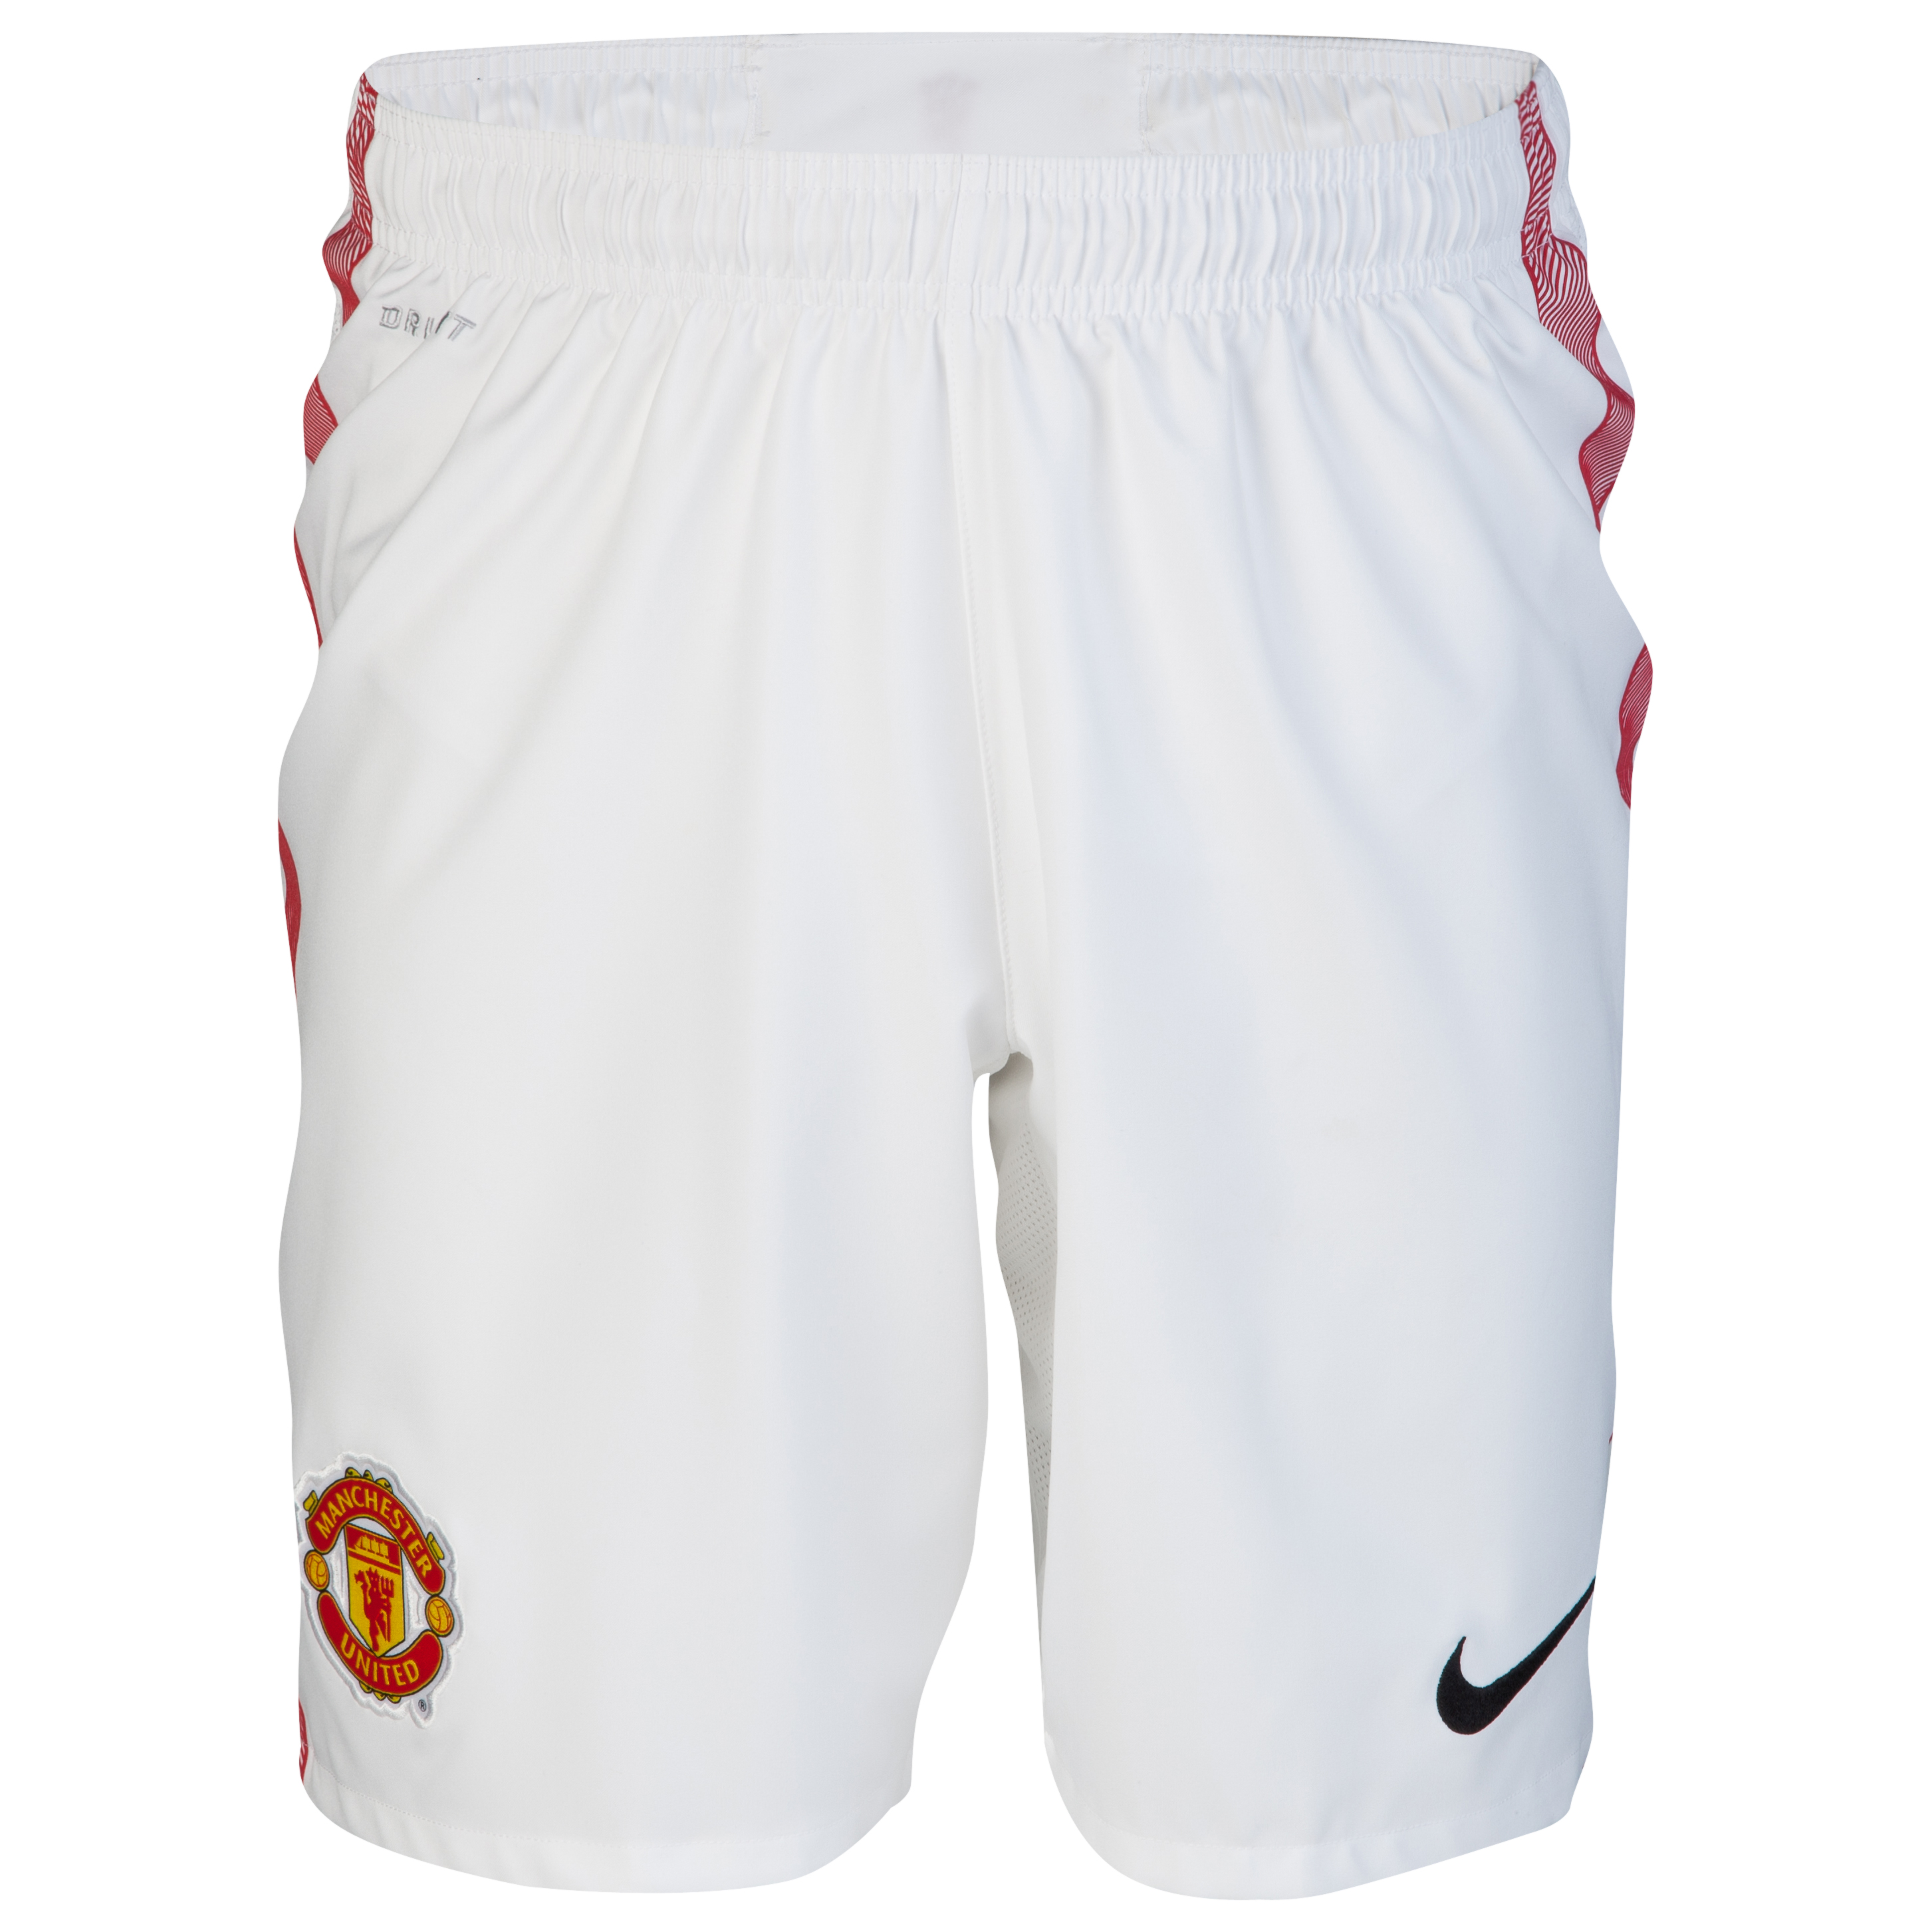 Manchester United Home Shorts 2012/13